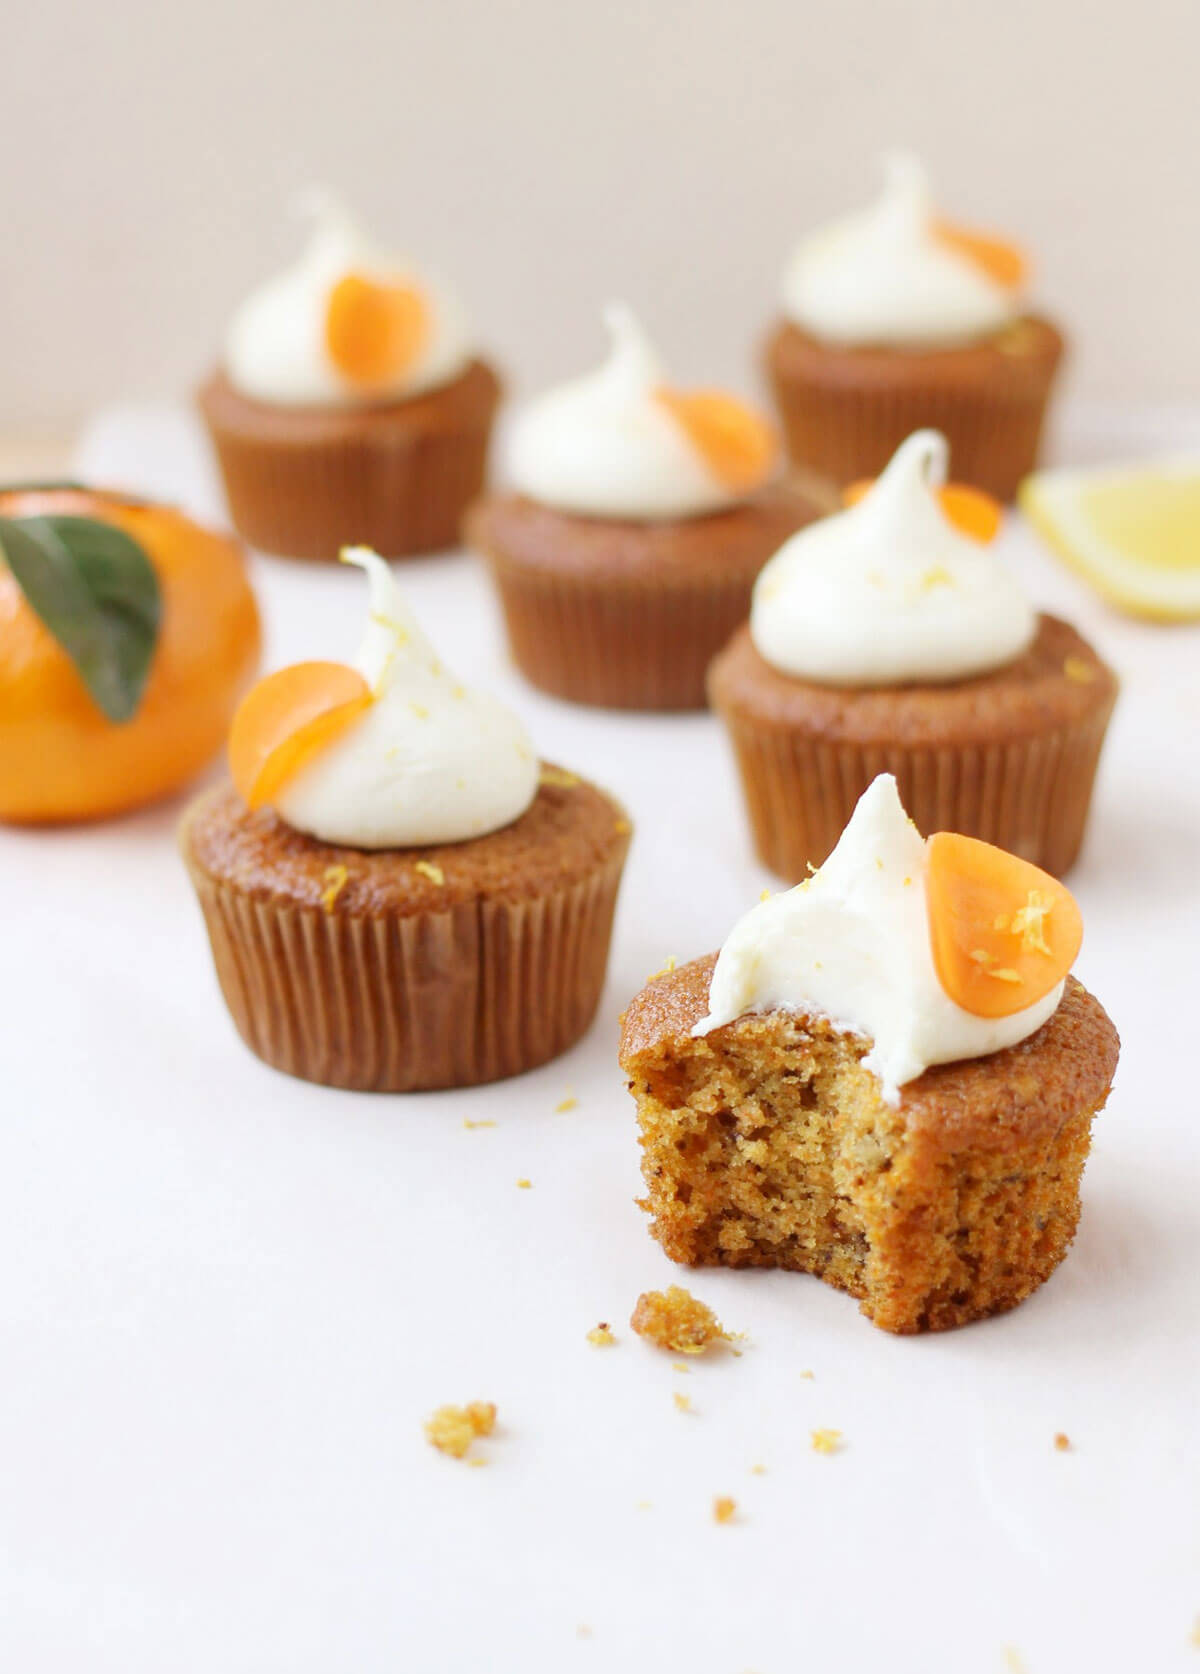 Orange and Carrot Cupcakes